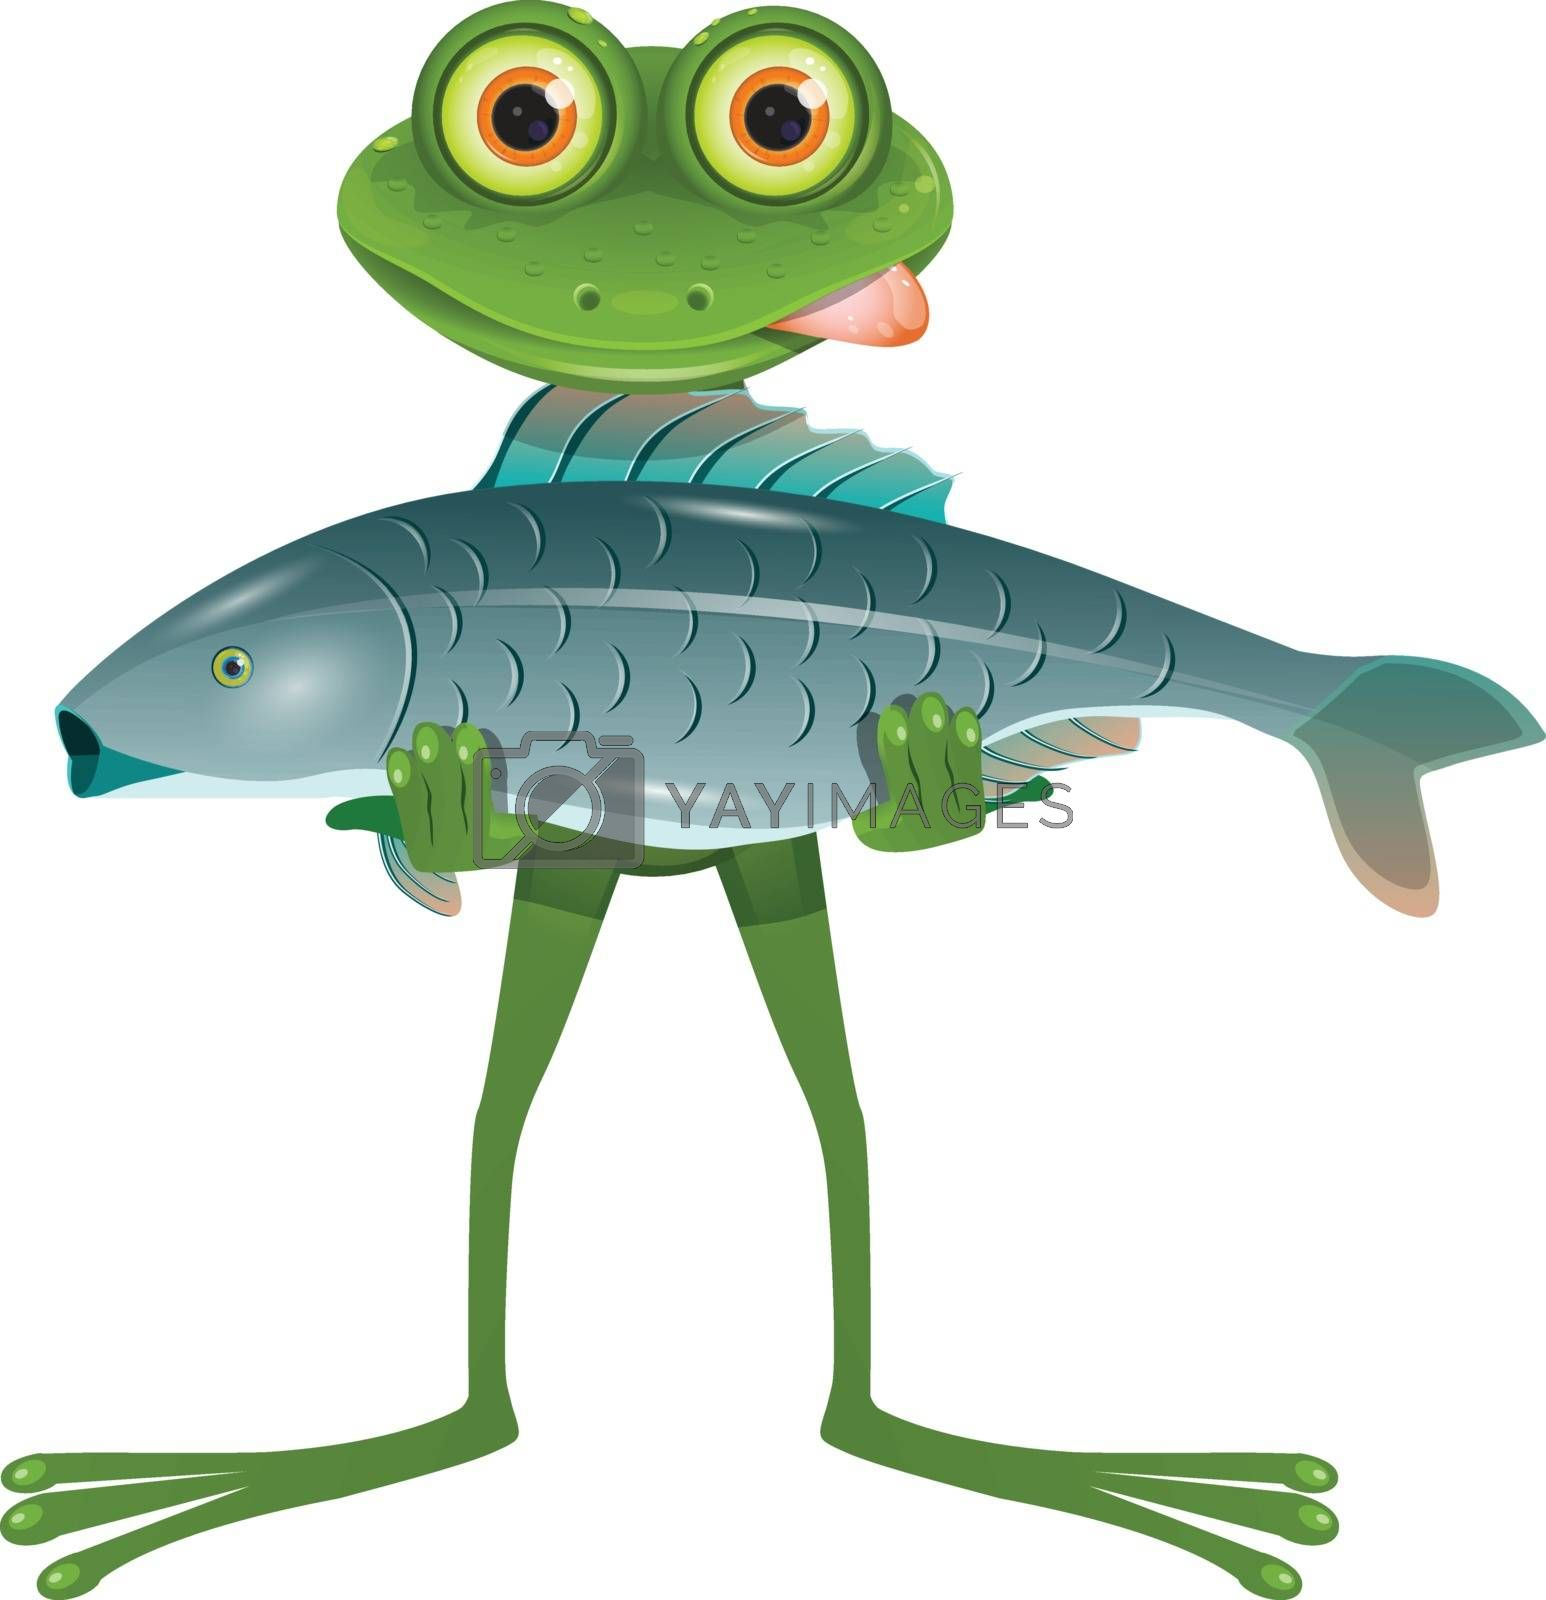 Illustration A Goggle-Eyed Frog with a Fish on a White Background